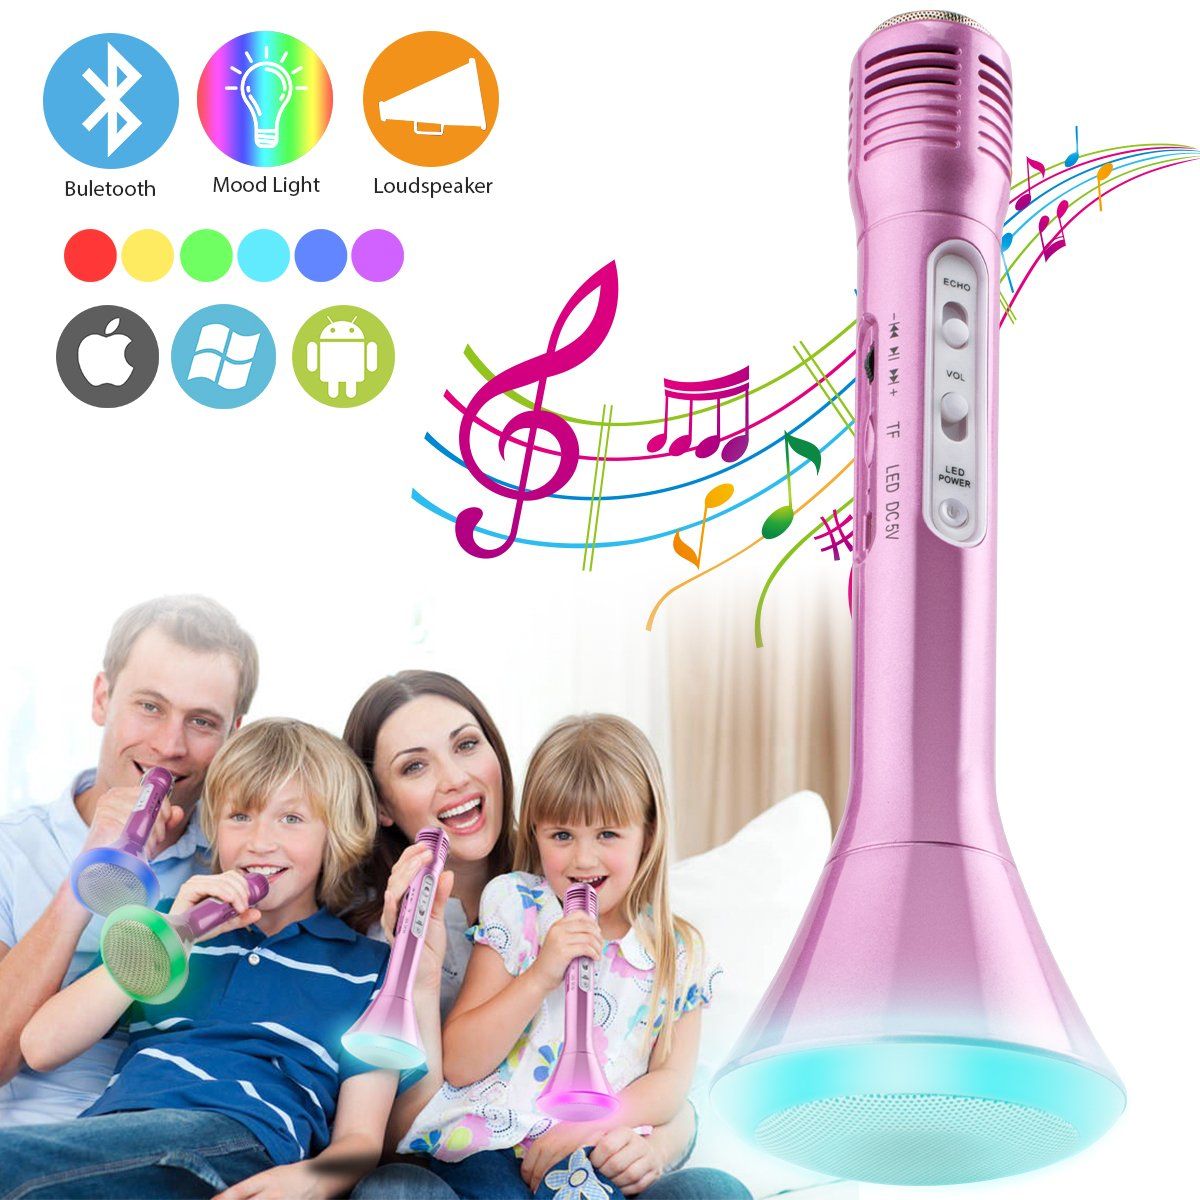 Luckymore Wireless Kids Karaoke Microphone with Bluetooth Speaker, Portable Handheld Karaoke Player for Home Party KTV Music Singing Playing, Support iPhone Android IOS Smartphone PC iPad (Pink)